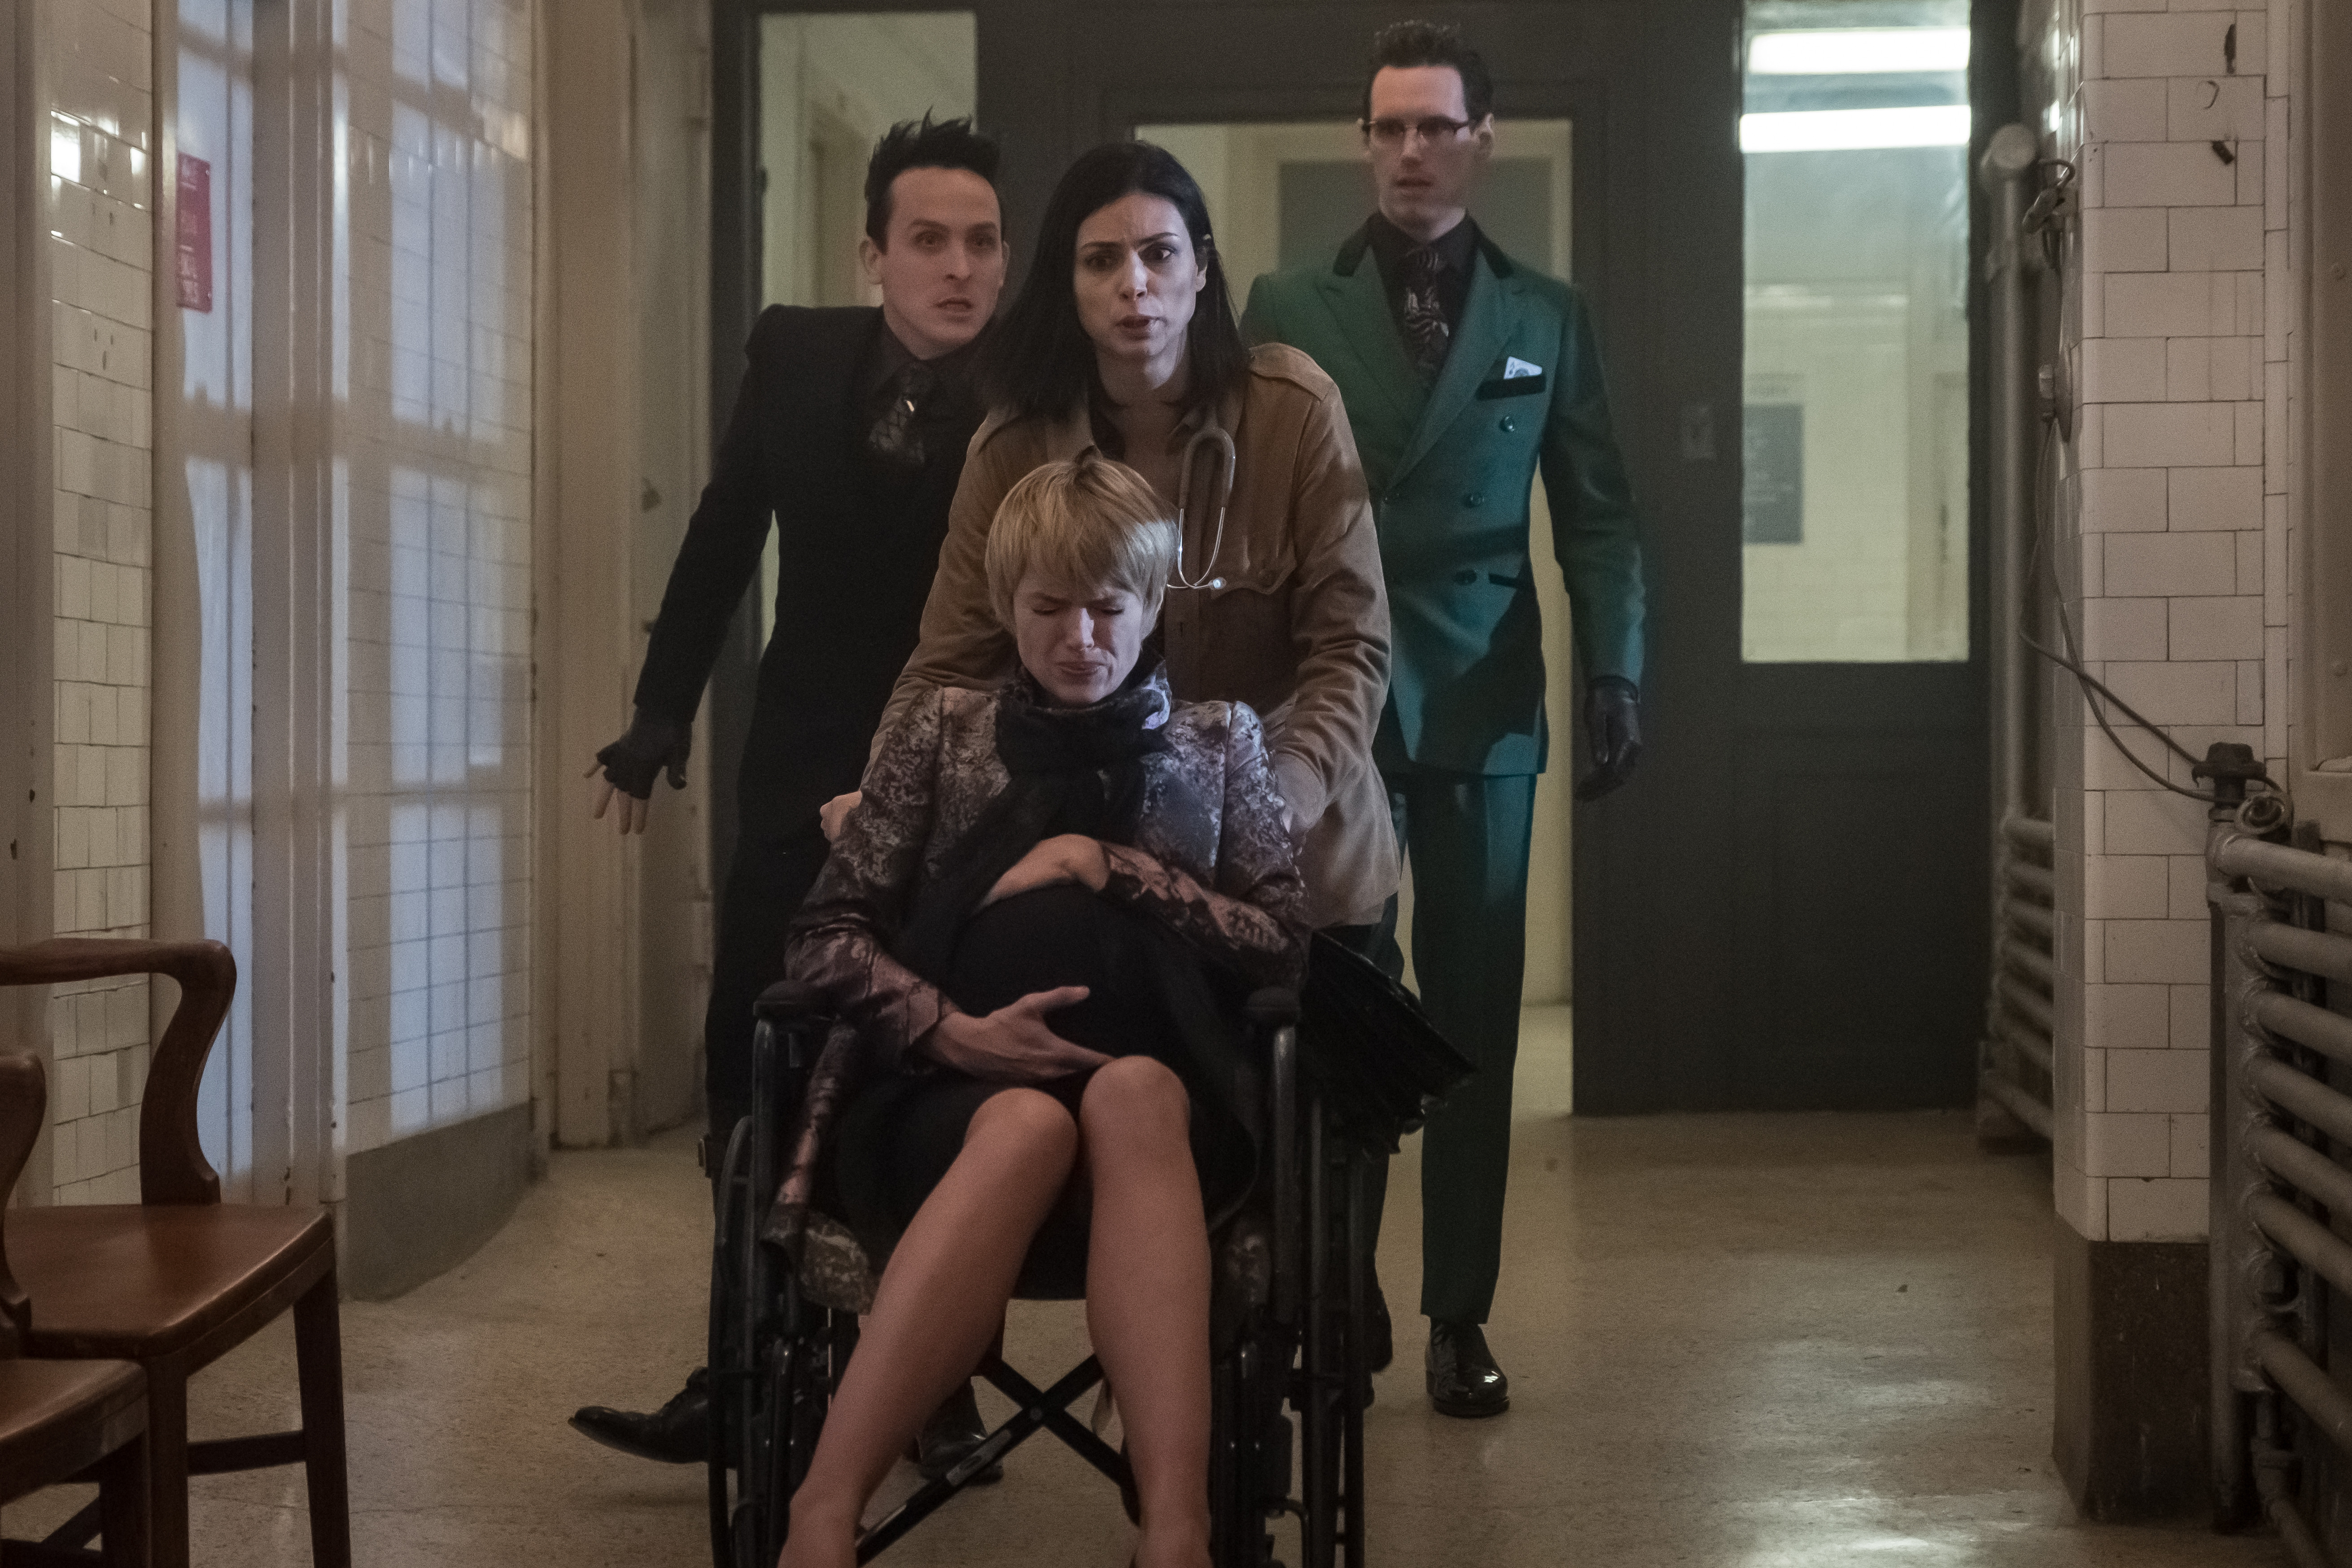 Lee, Riddler, and Penguin moving Barbara Kean while in labor on Gotham